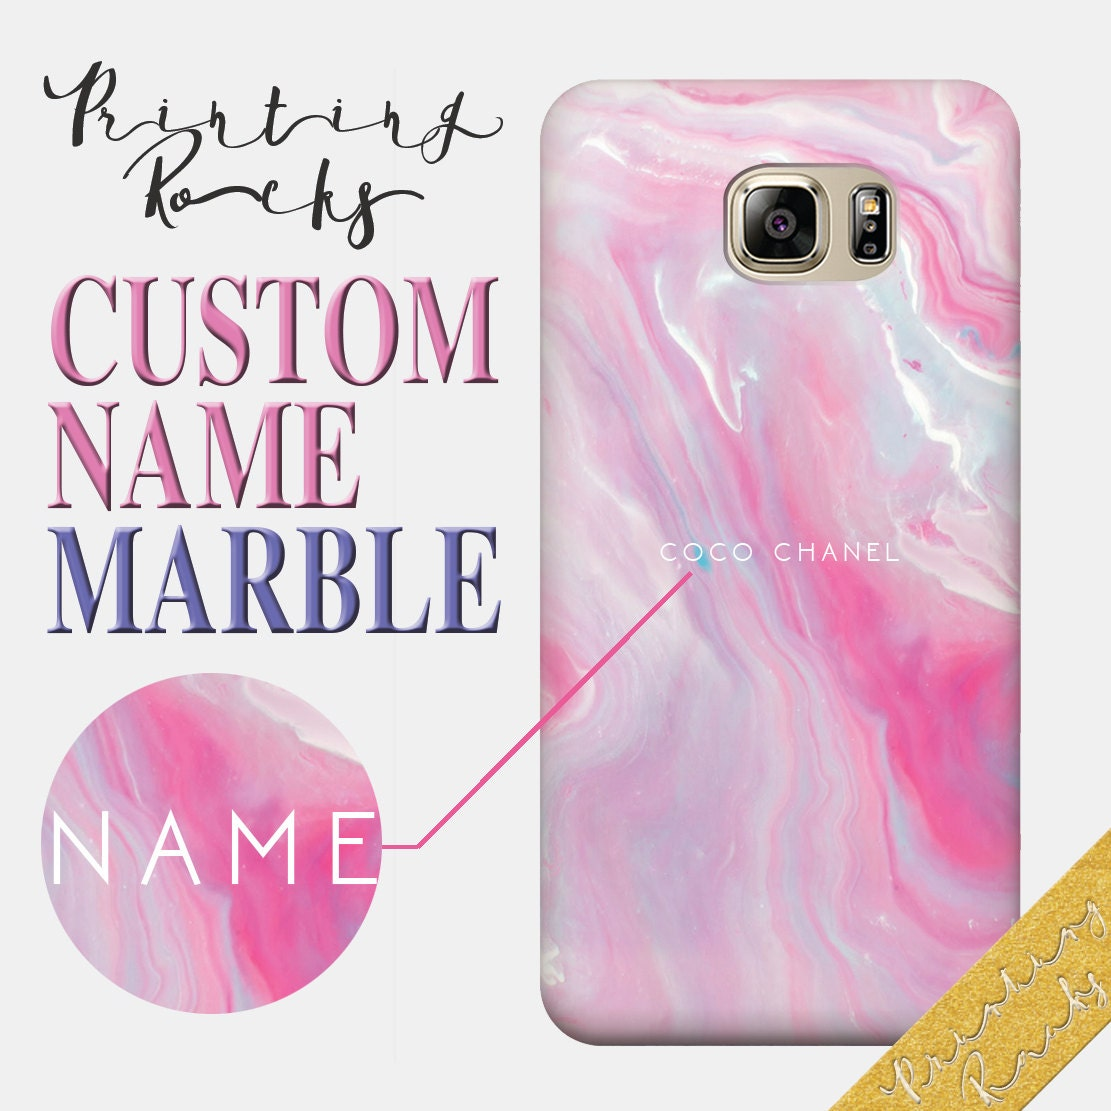 How to use scrapbook on galaxy s5 - Pink Marble Case For Samsung Galaxy S6 Case Samsung Galaxy S6 Edge Case Samsung Galaxy S5 Case Samsung Galaxy S5 Mini Case Samsung S7 29